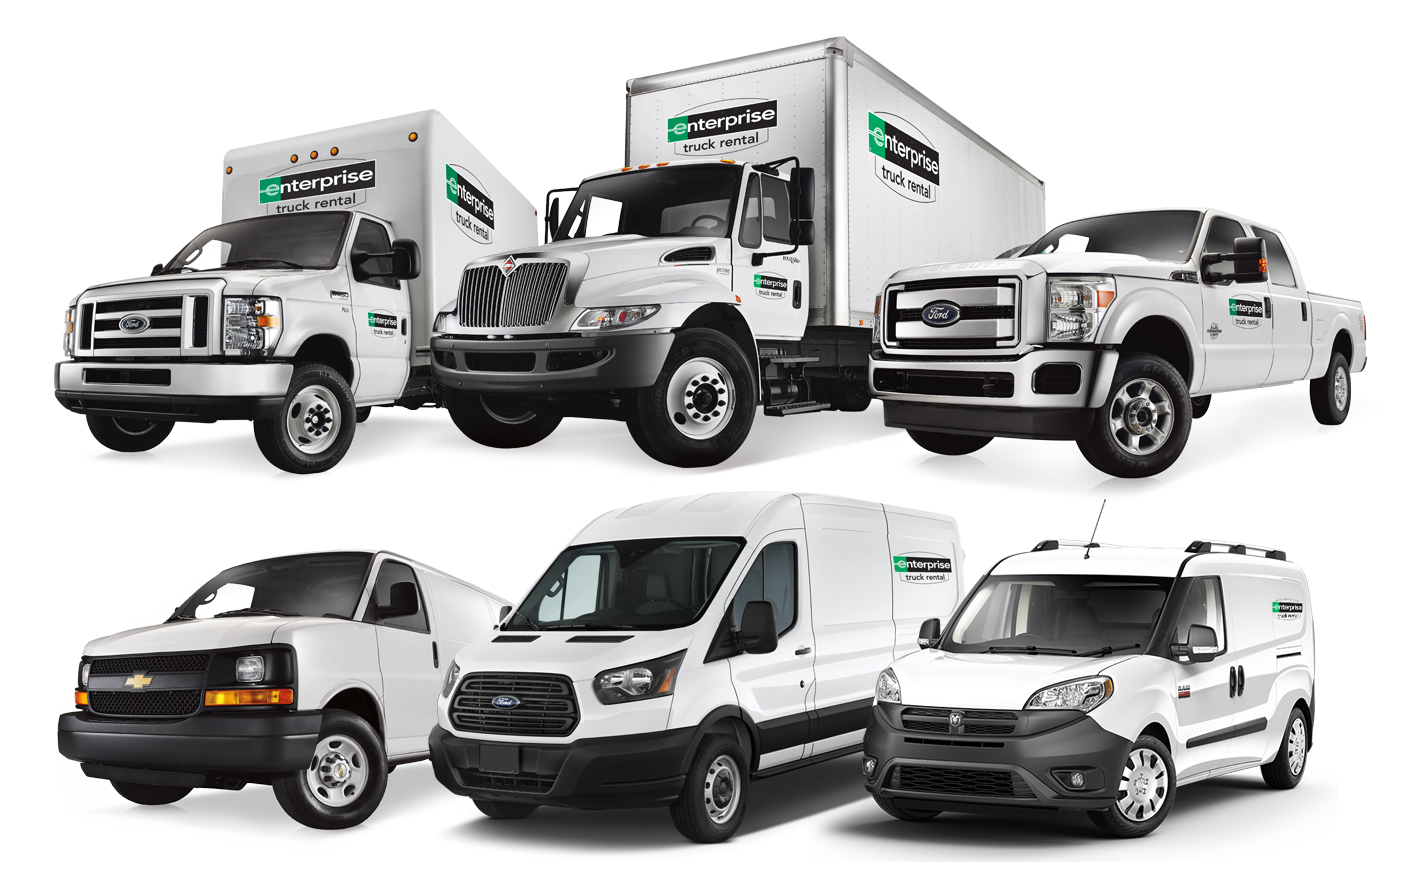 Pick Up Truck Rentals >> Travel Pr News Enterprise Truck Rental Opens Its First